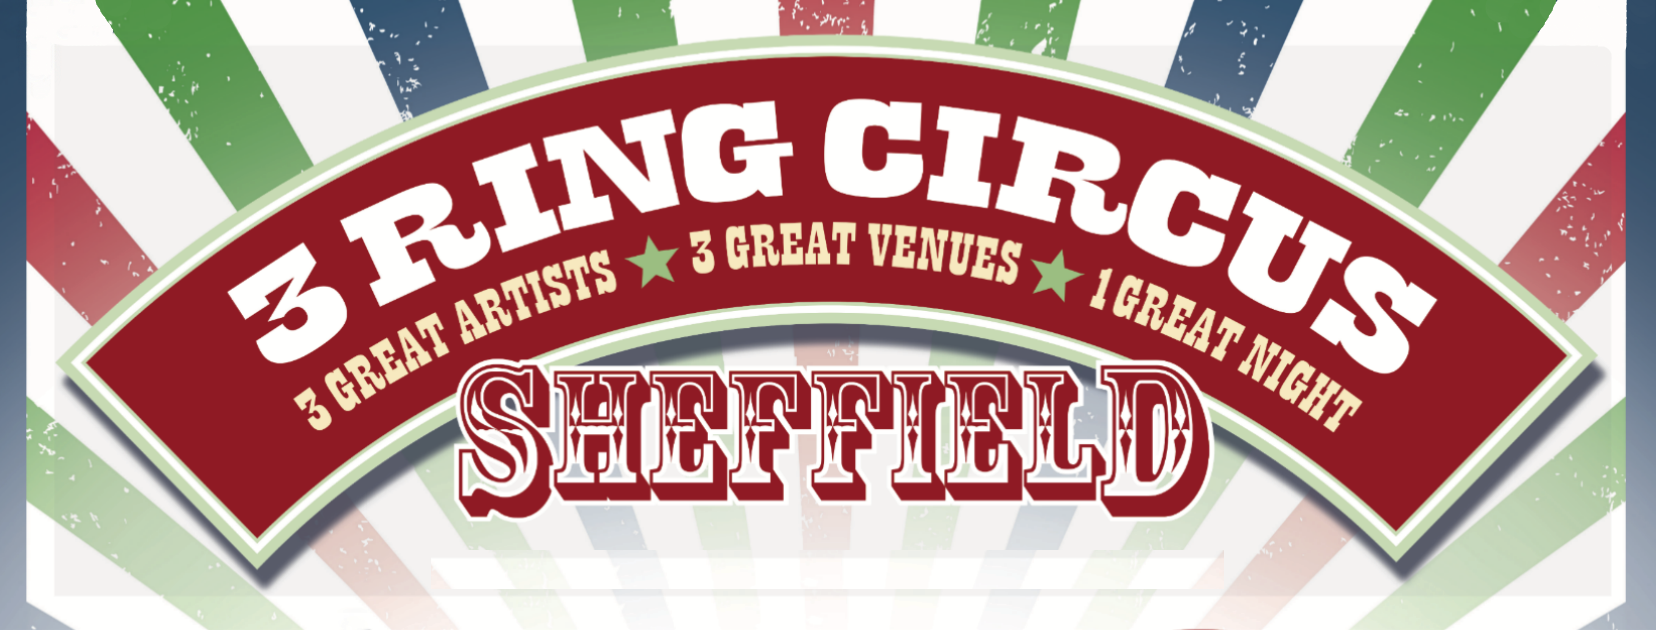 3 RING CIRCUS - Richard Hawley,  James Dean Bradfield and Lou Doillon *SOLD OUT*